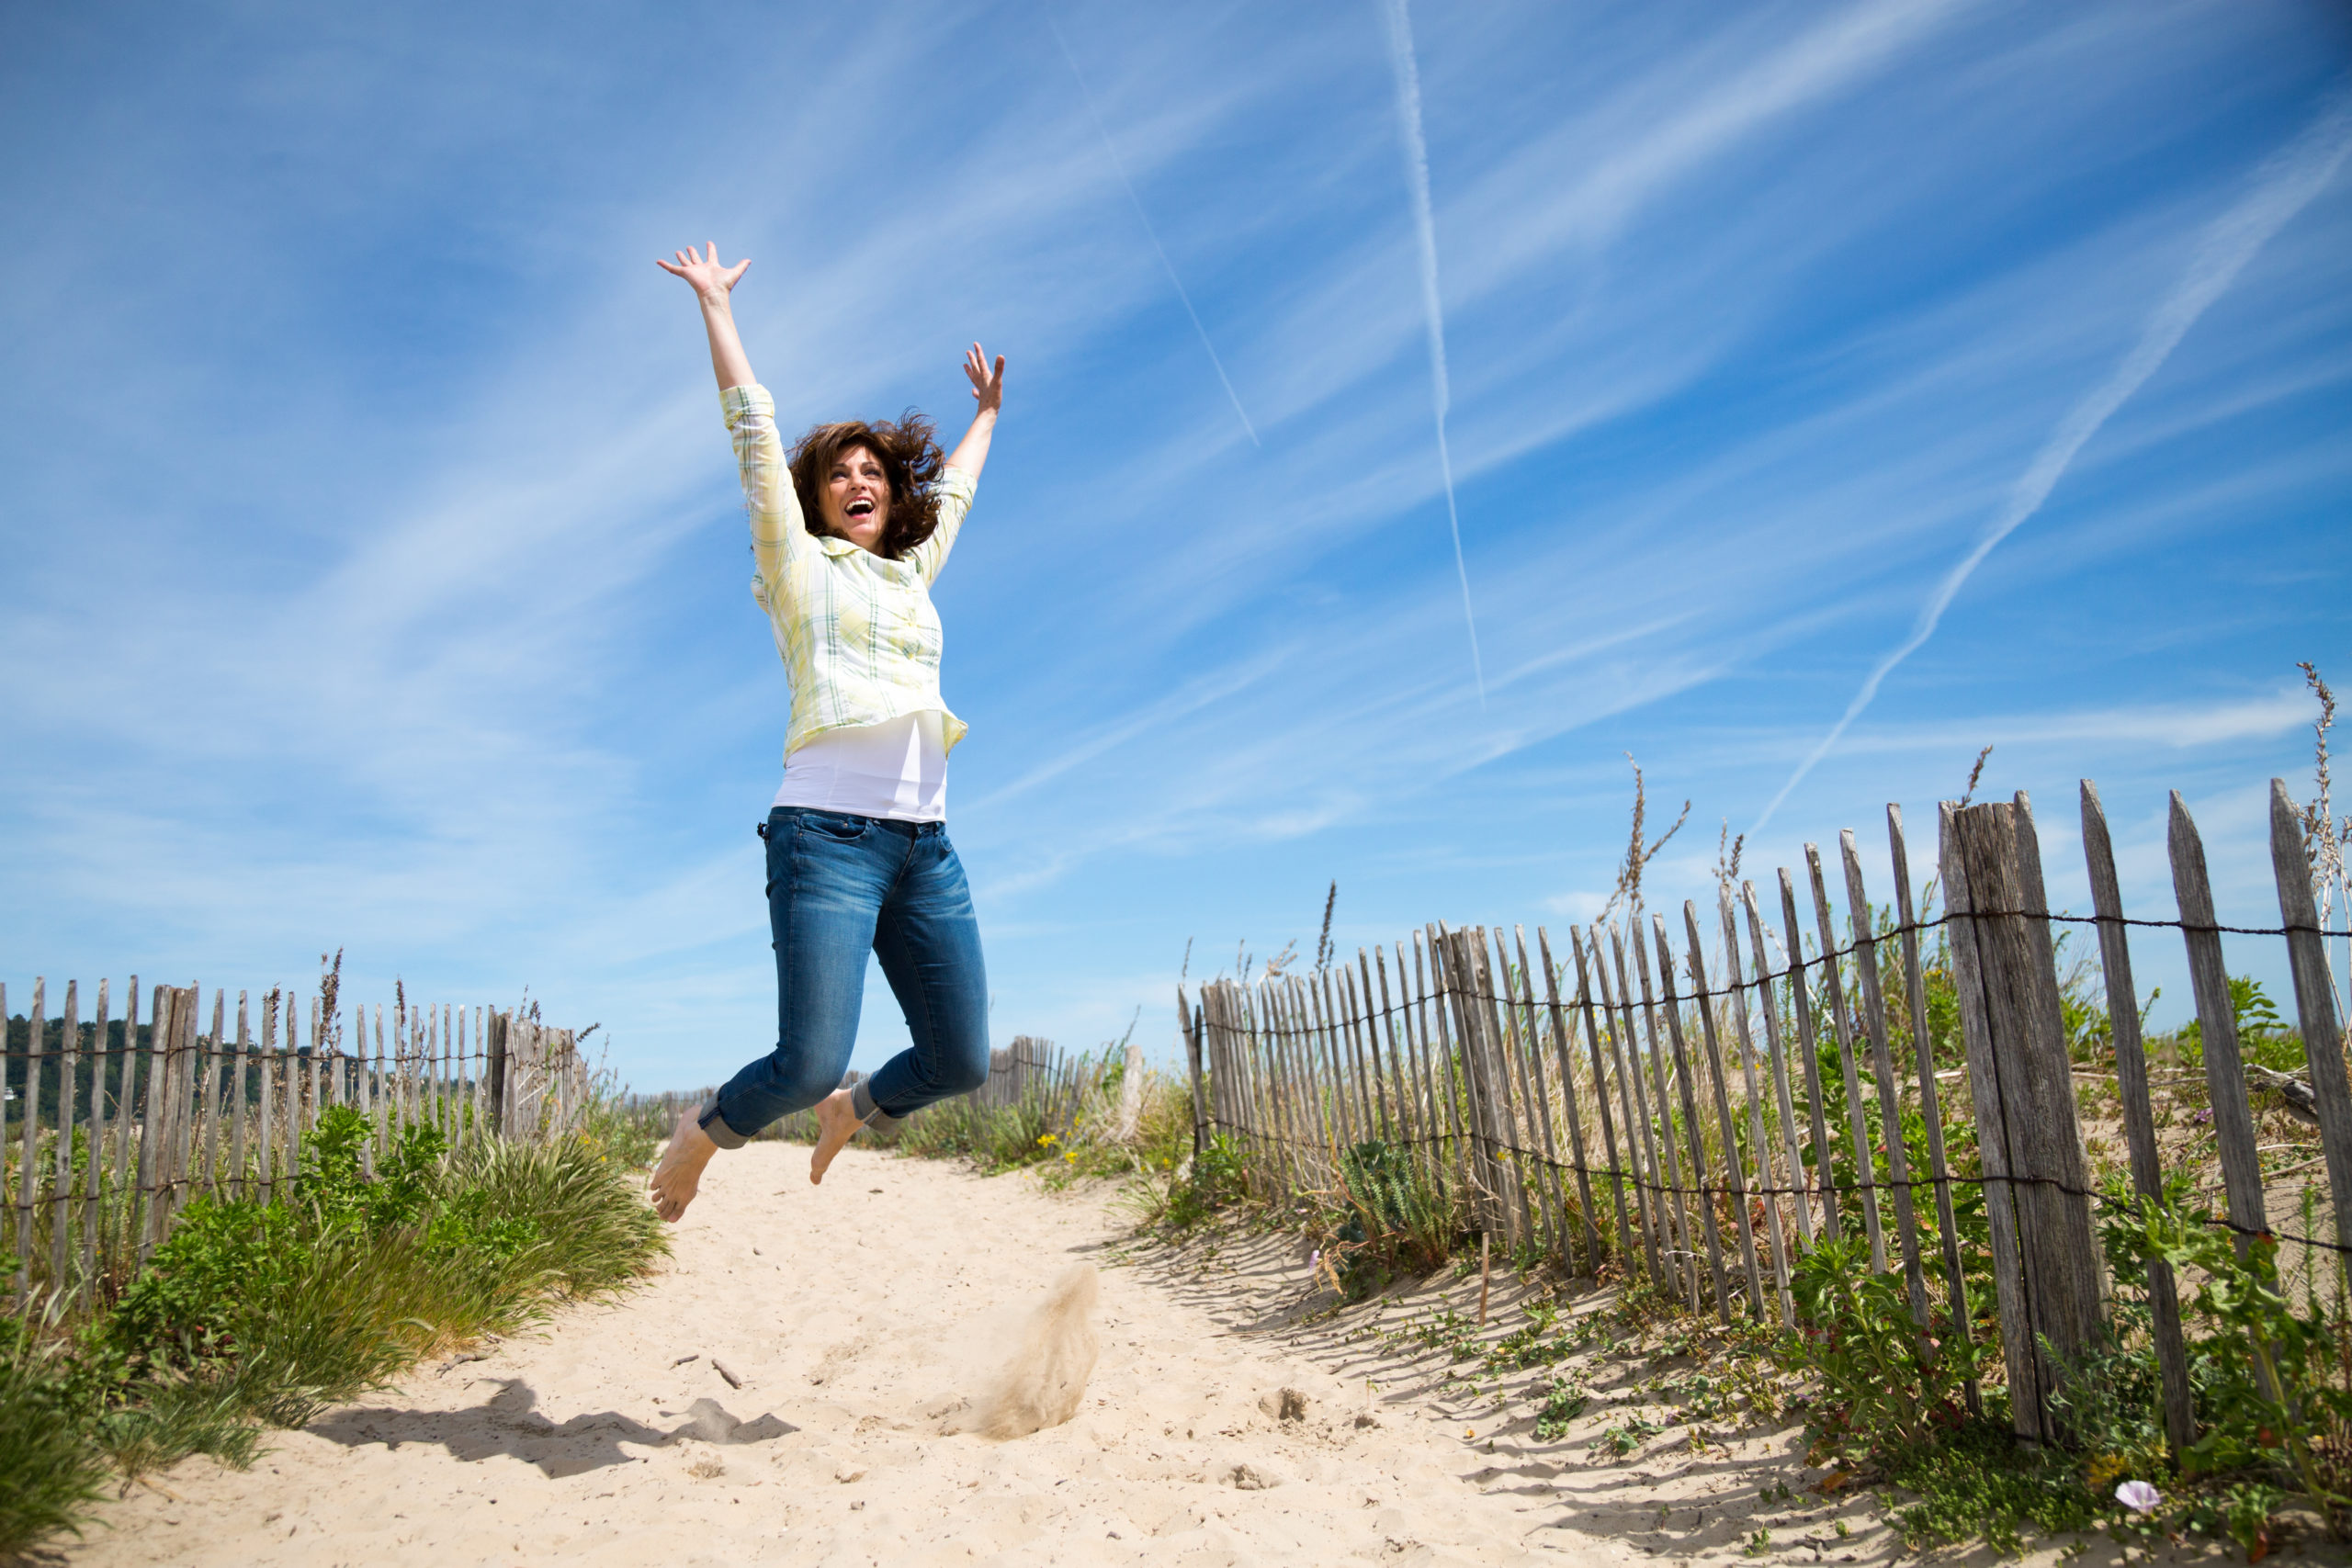 Woman jumping on a sandy beach wearing a yellow shirt and jeans